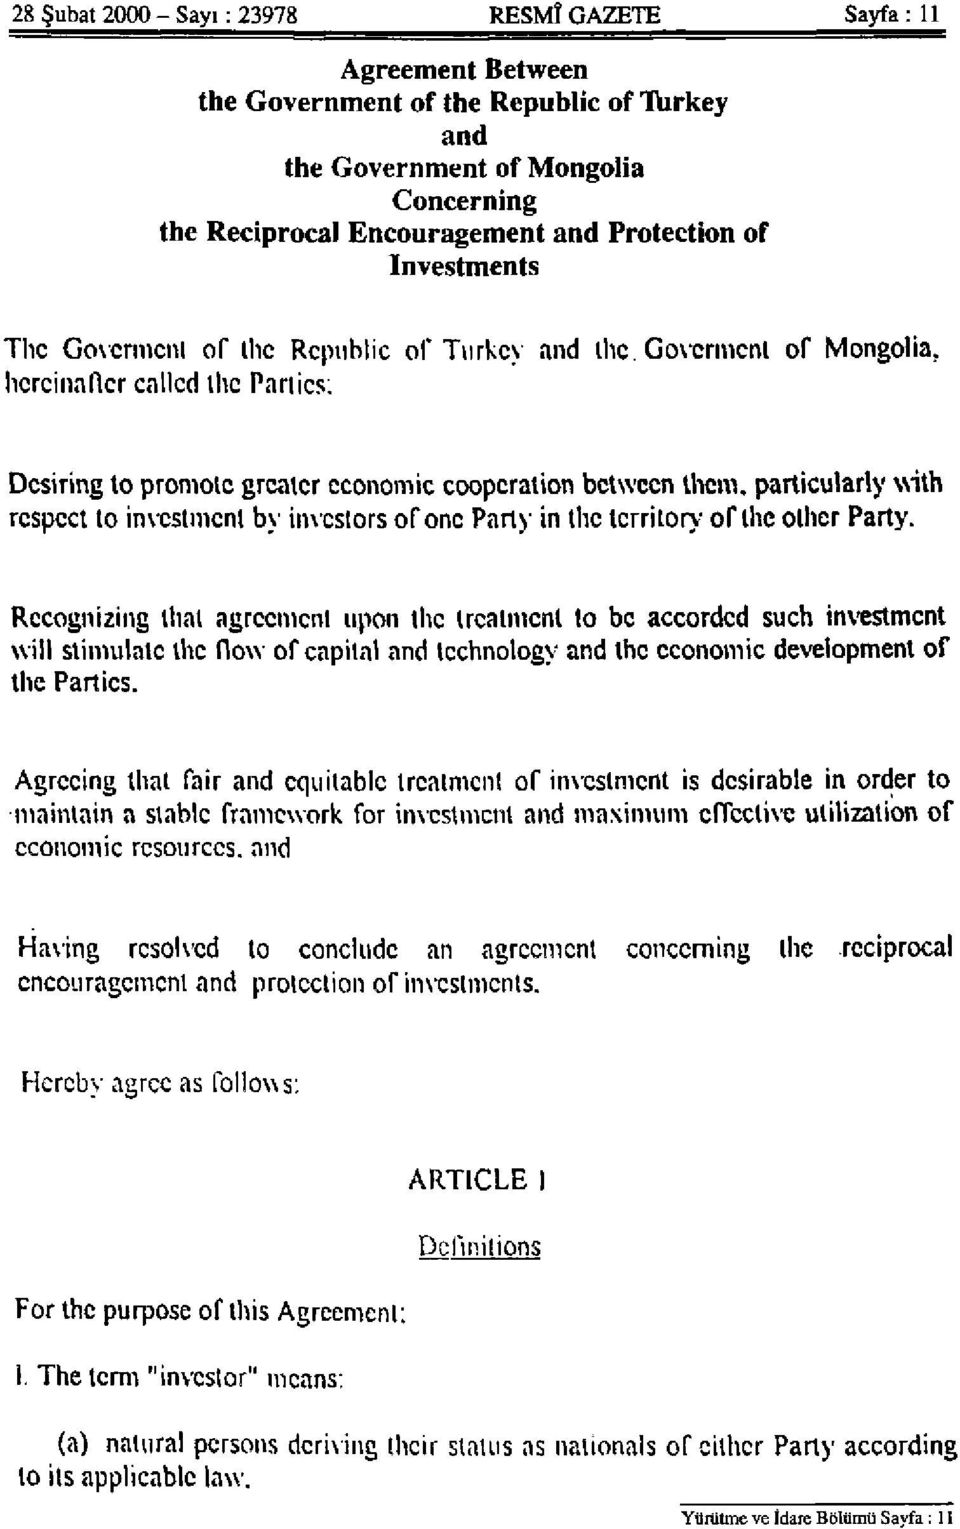 Govcrmcnl of Mongolia, hereinafter called the Parlies: Desiring to promote greater economic cooperation between them, particularly with respect to investment by investors of one Party in the